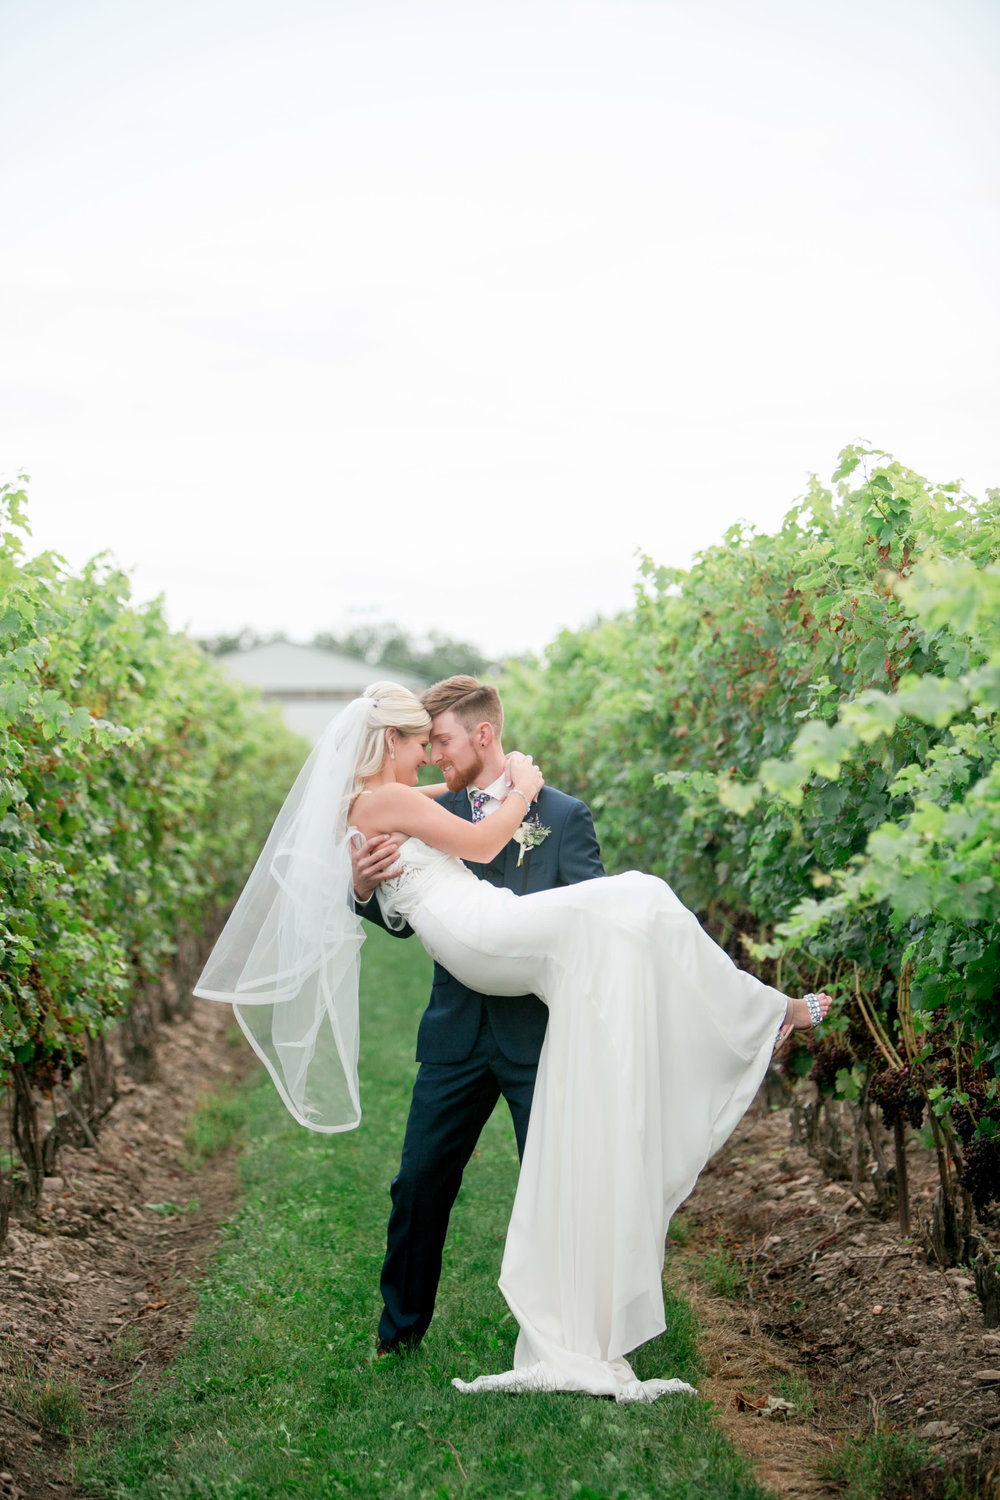 Maddy___Brandon___Daniel_Ricci_Weddings_High_Res._Finals_475.jpg